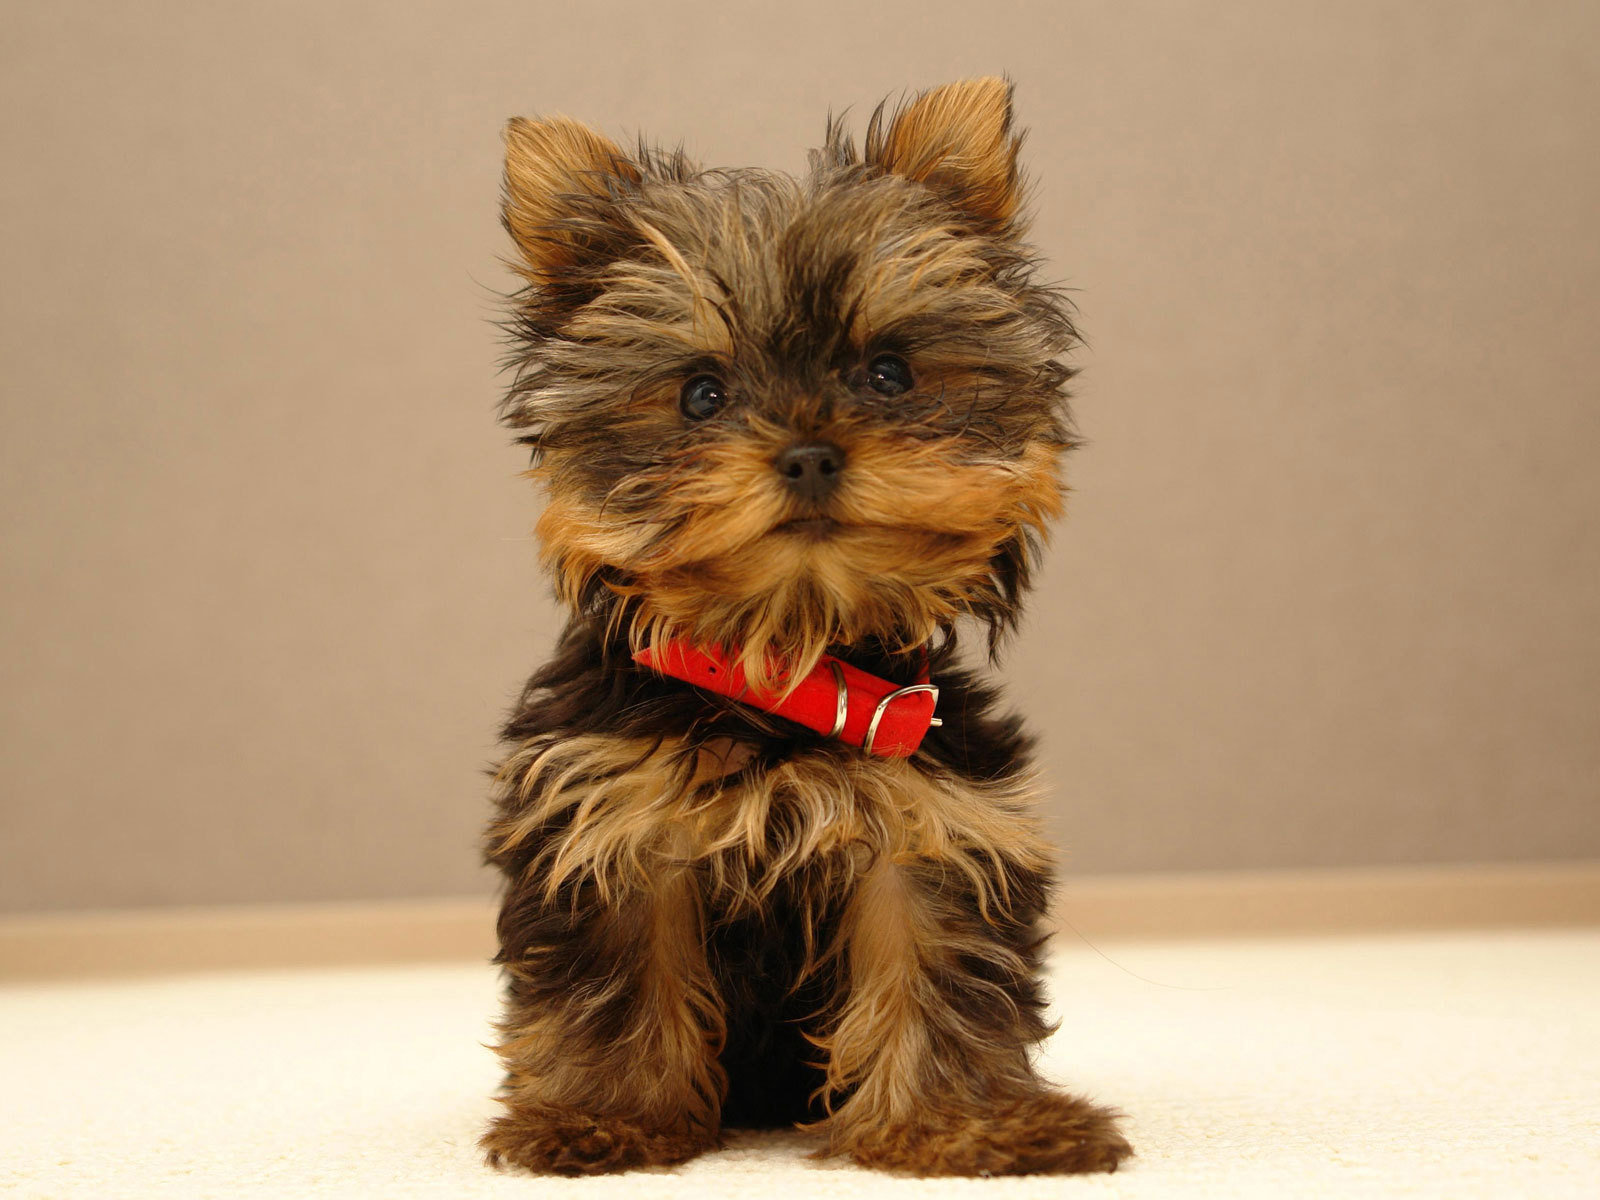 1600x1200 Cute puppy desktop wallpapers and stock photos